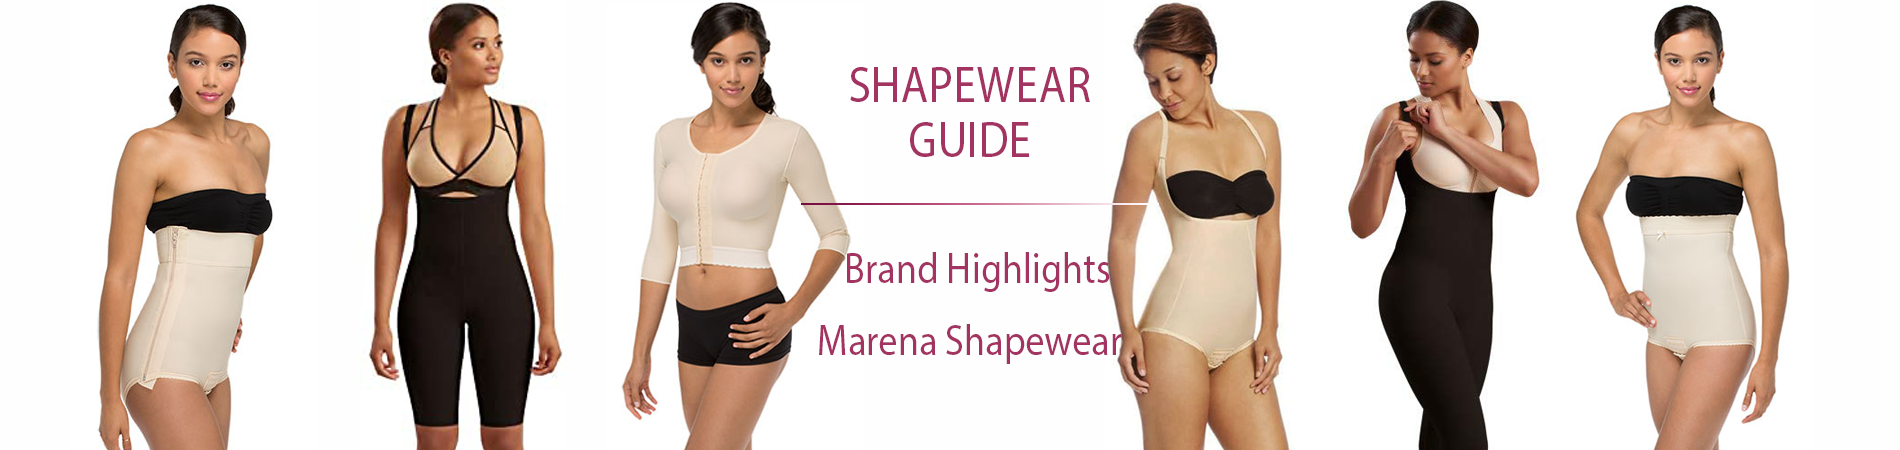 Marena Shapewear Guide